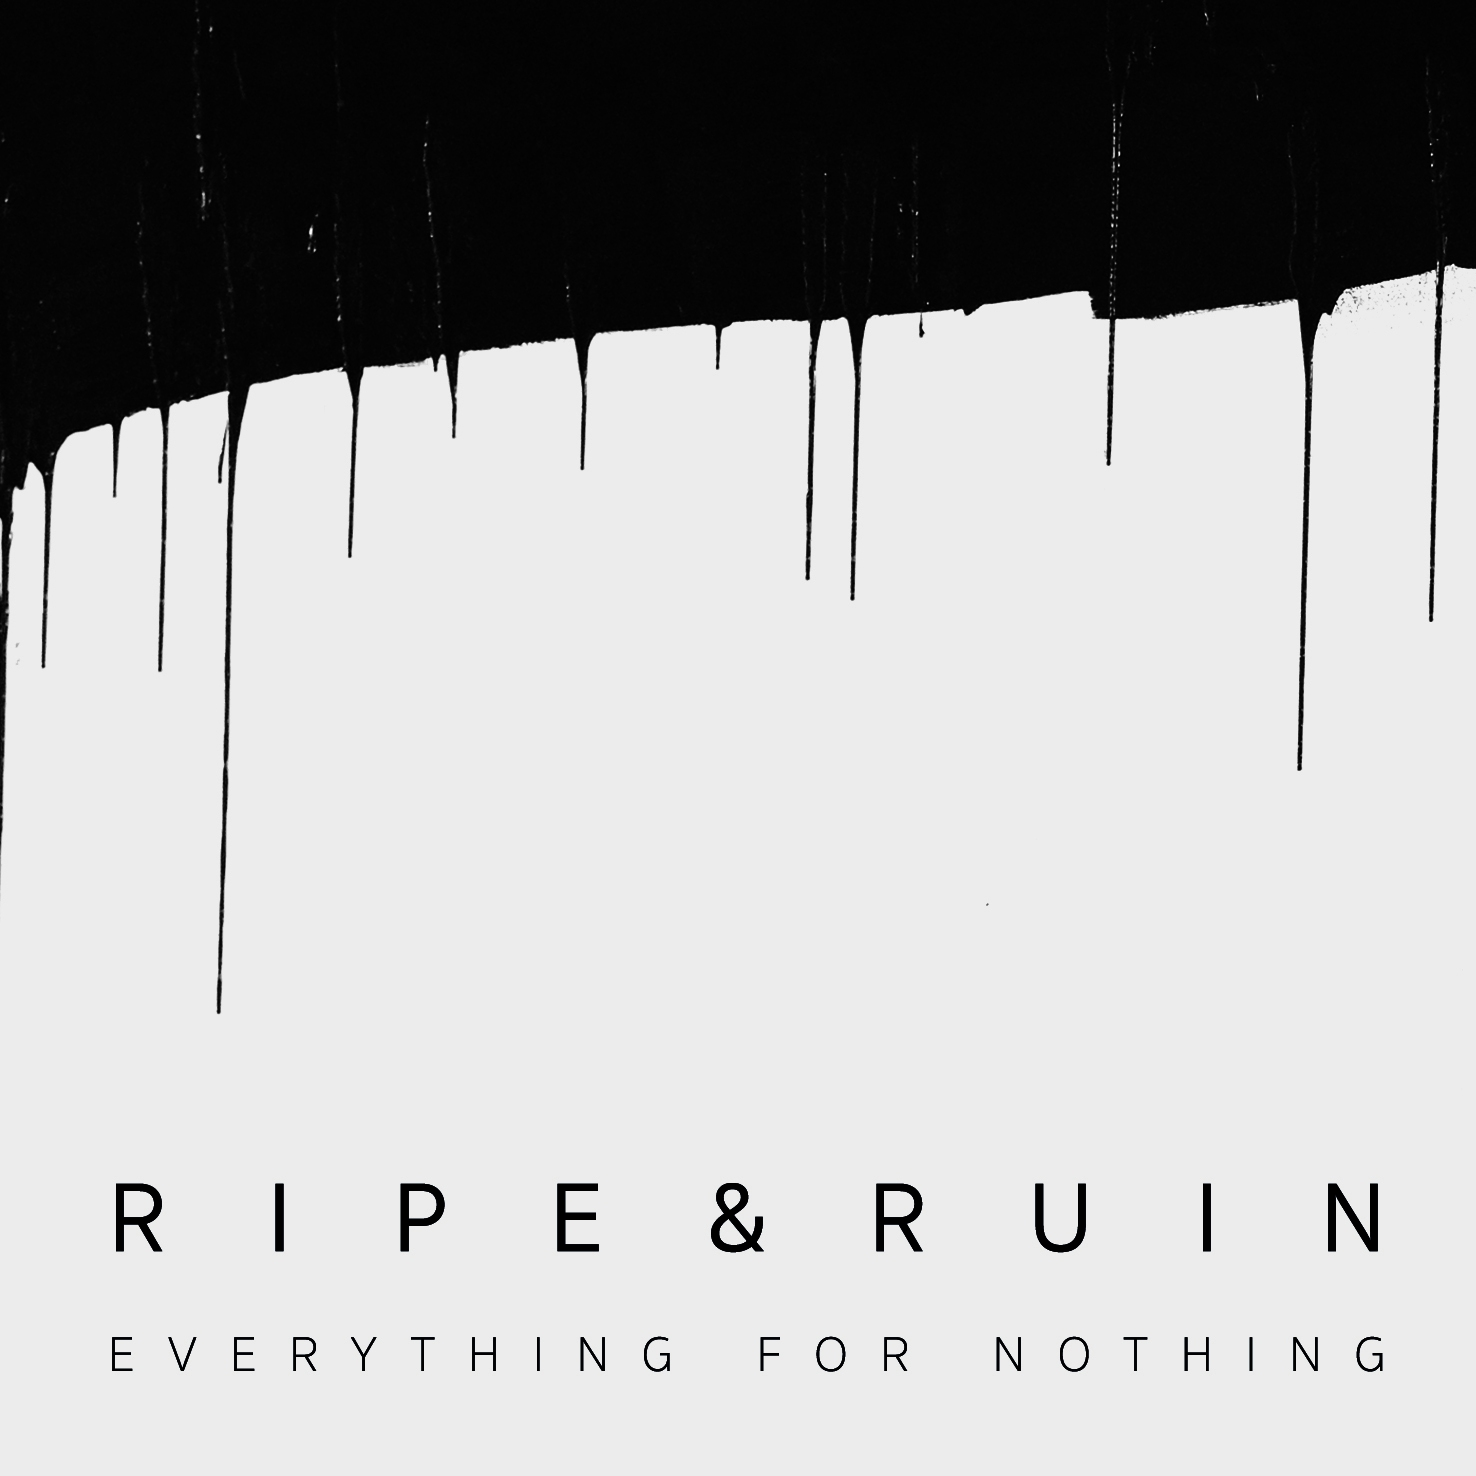 Ripe & Ruin: Everything for Nothing